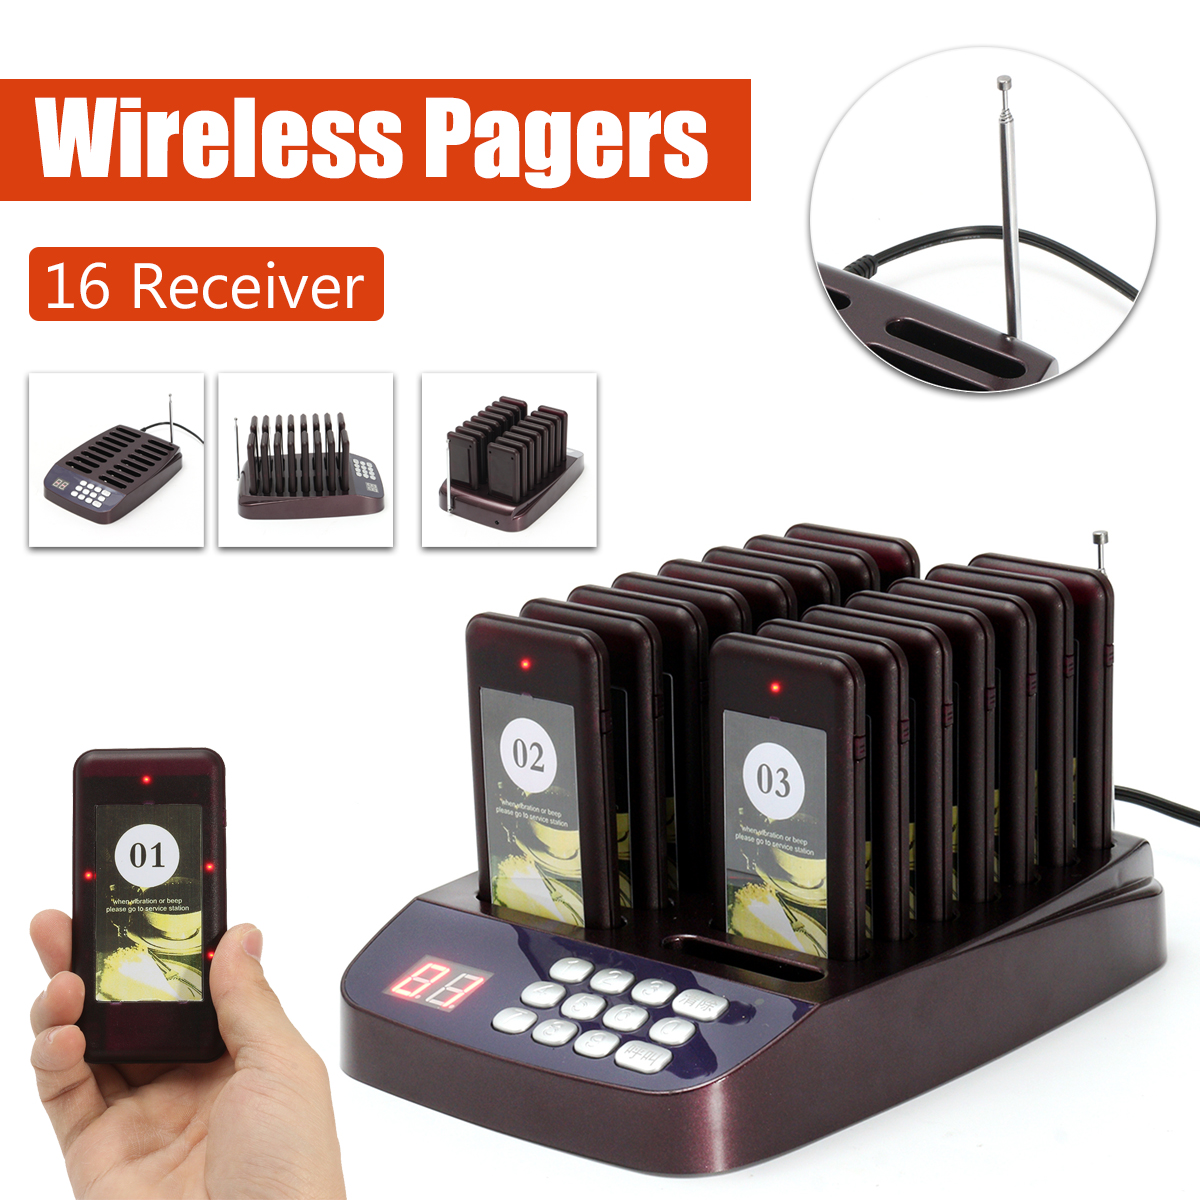 Restaurant Pager Buzzer Wireless Paging Queuing Calling System Transmitter with Coaster Pagers for Cafe Restaurant Equipments tivdio wireless restaurant pager guest paging queuing system 1 transmitter 20 chargeable pagers restaurants equipments f9401a